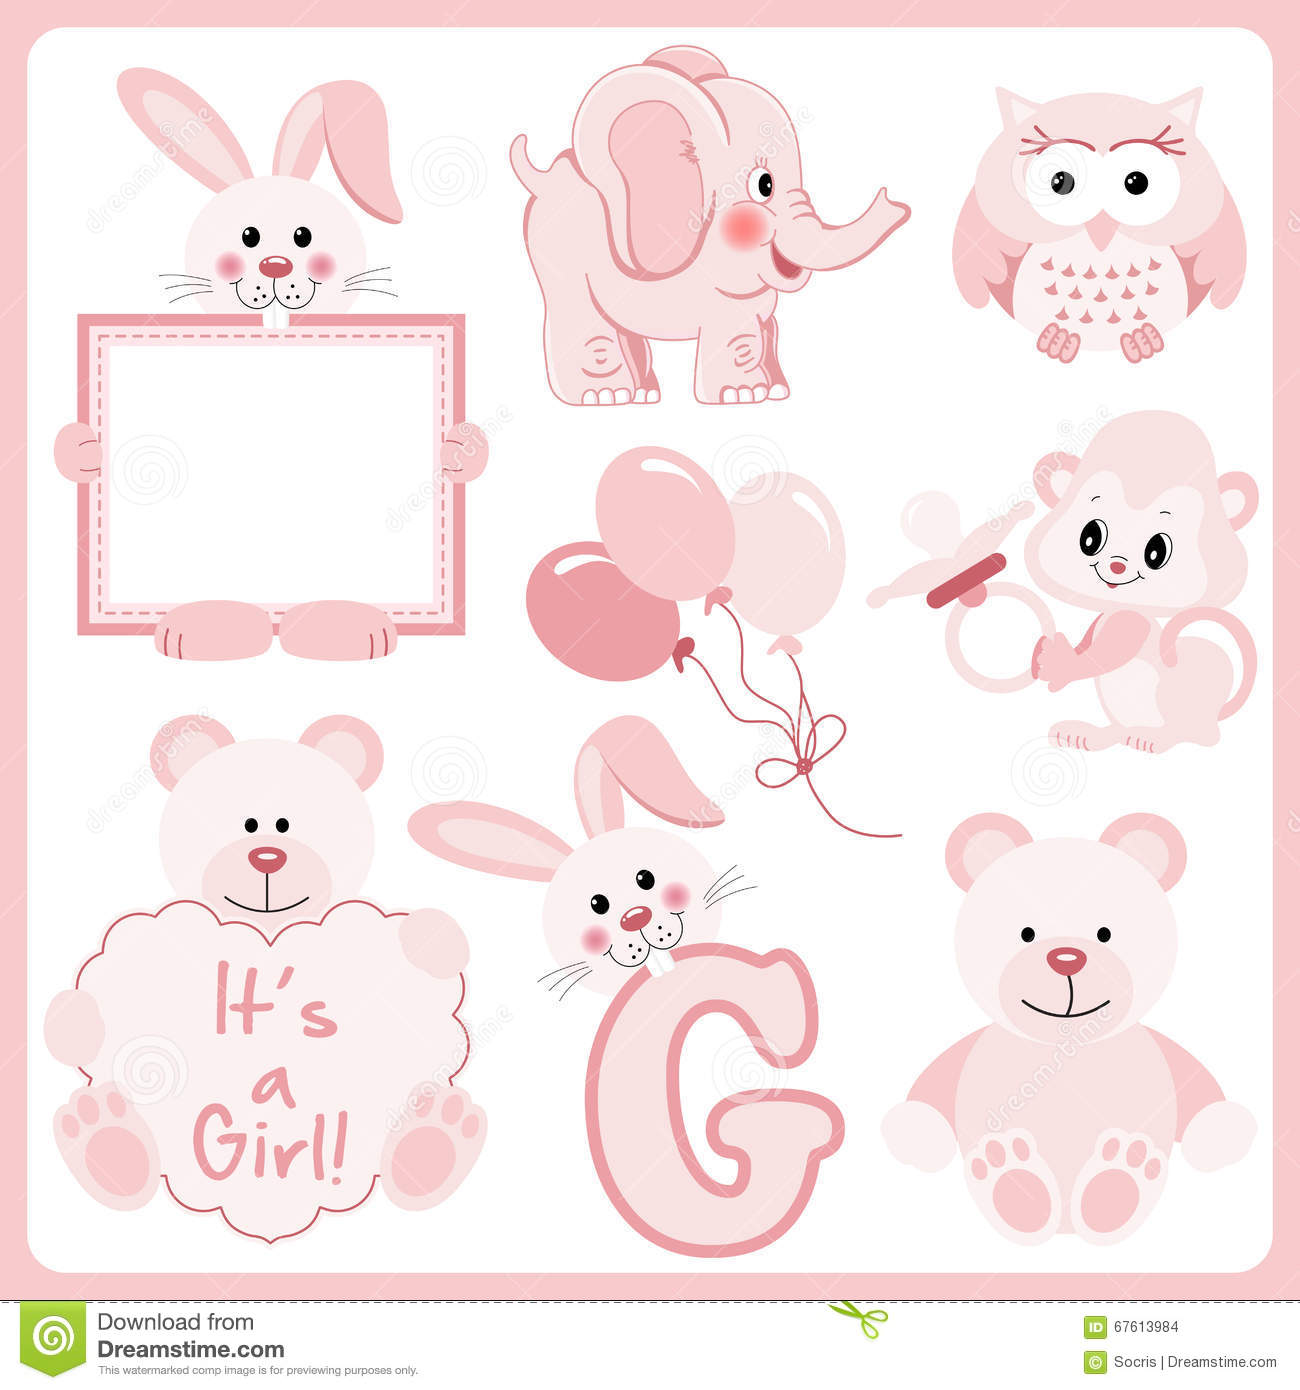 Baby girl animals clipart image black and white stock Baby Girl Pink Animals Digital Clipart Stock Vector - Image: 67613984 image black and white stock